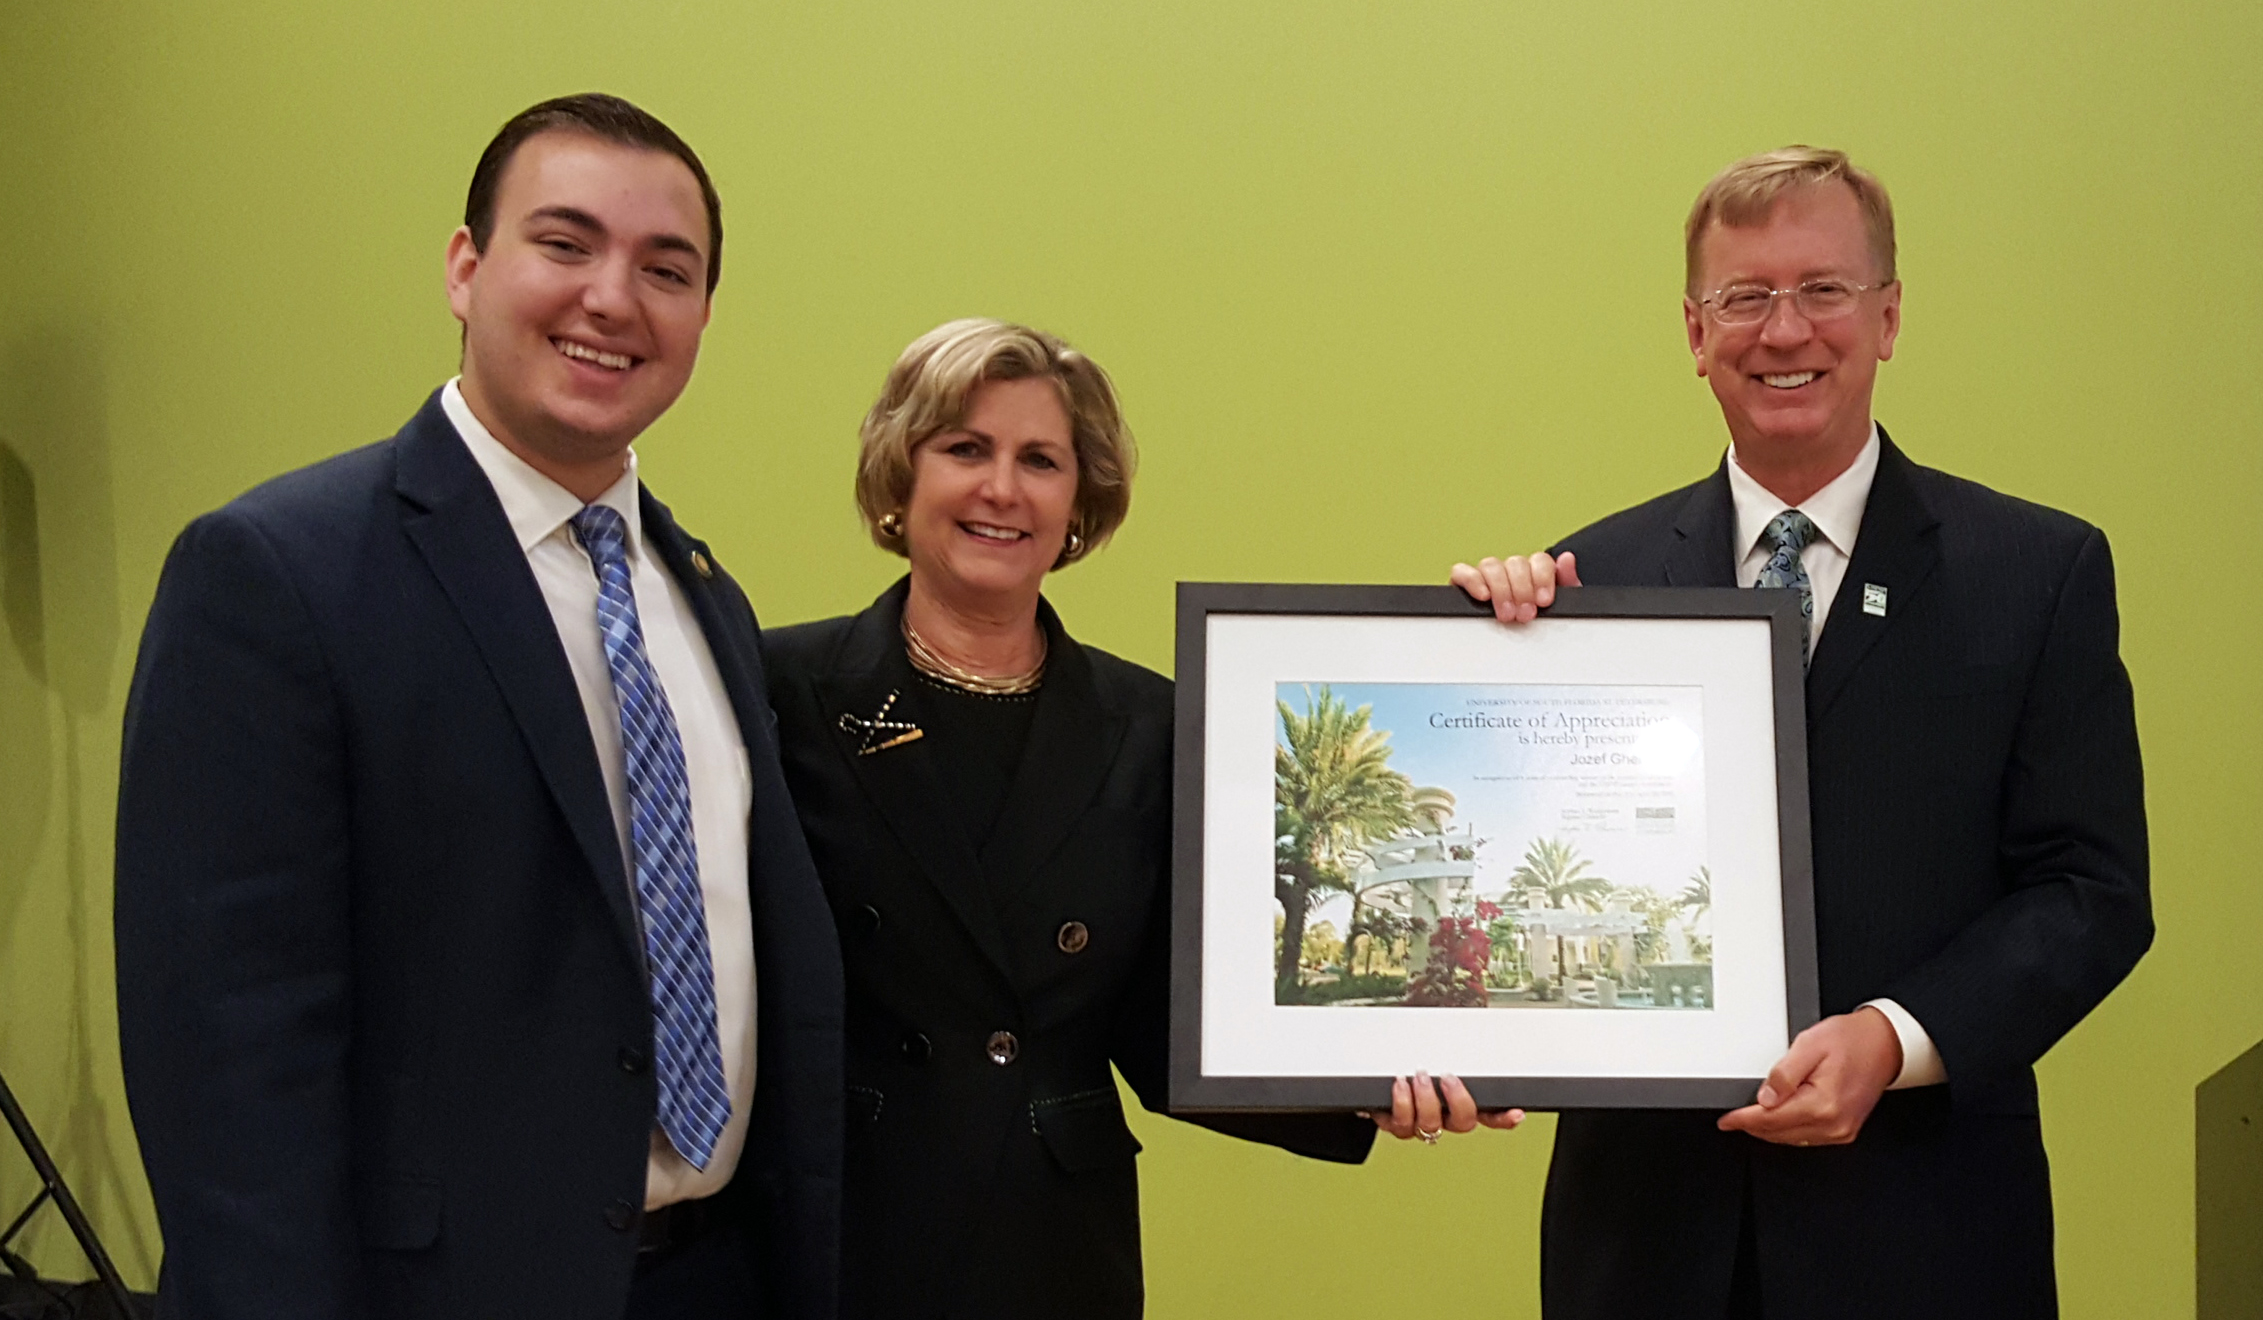 Campus Board Recognizes Outgoing Trustee, Student President ...